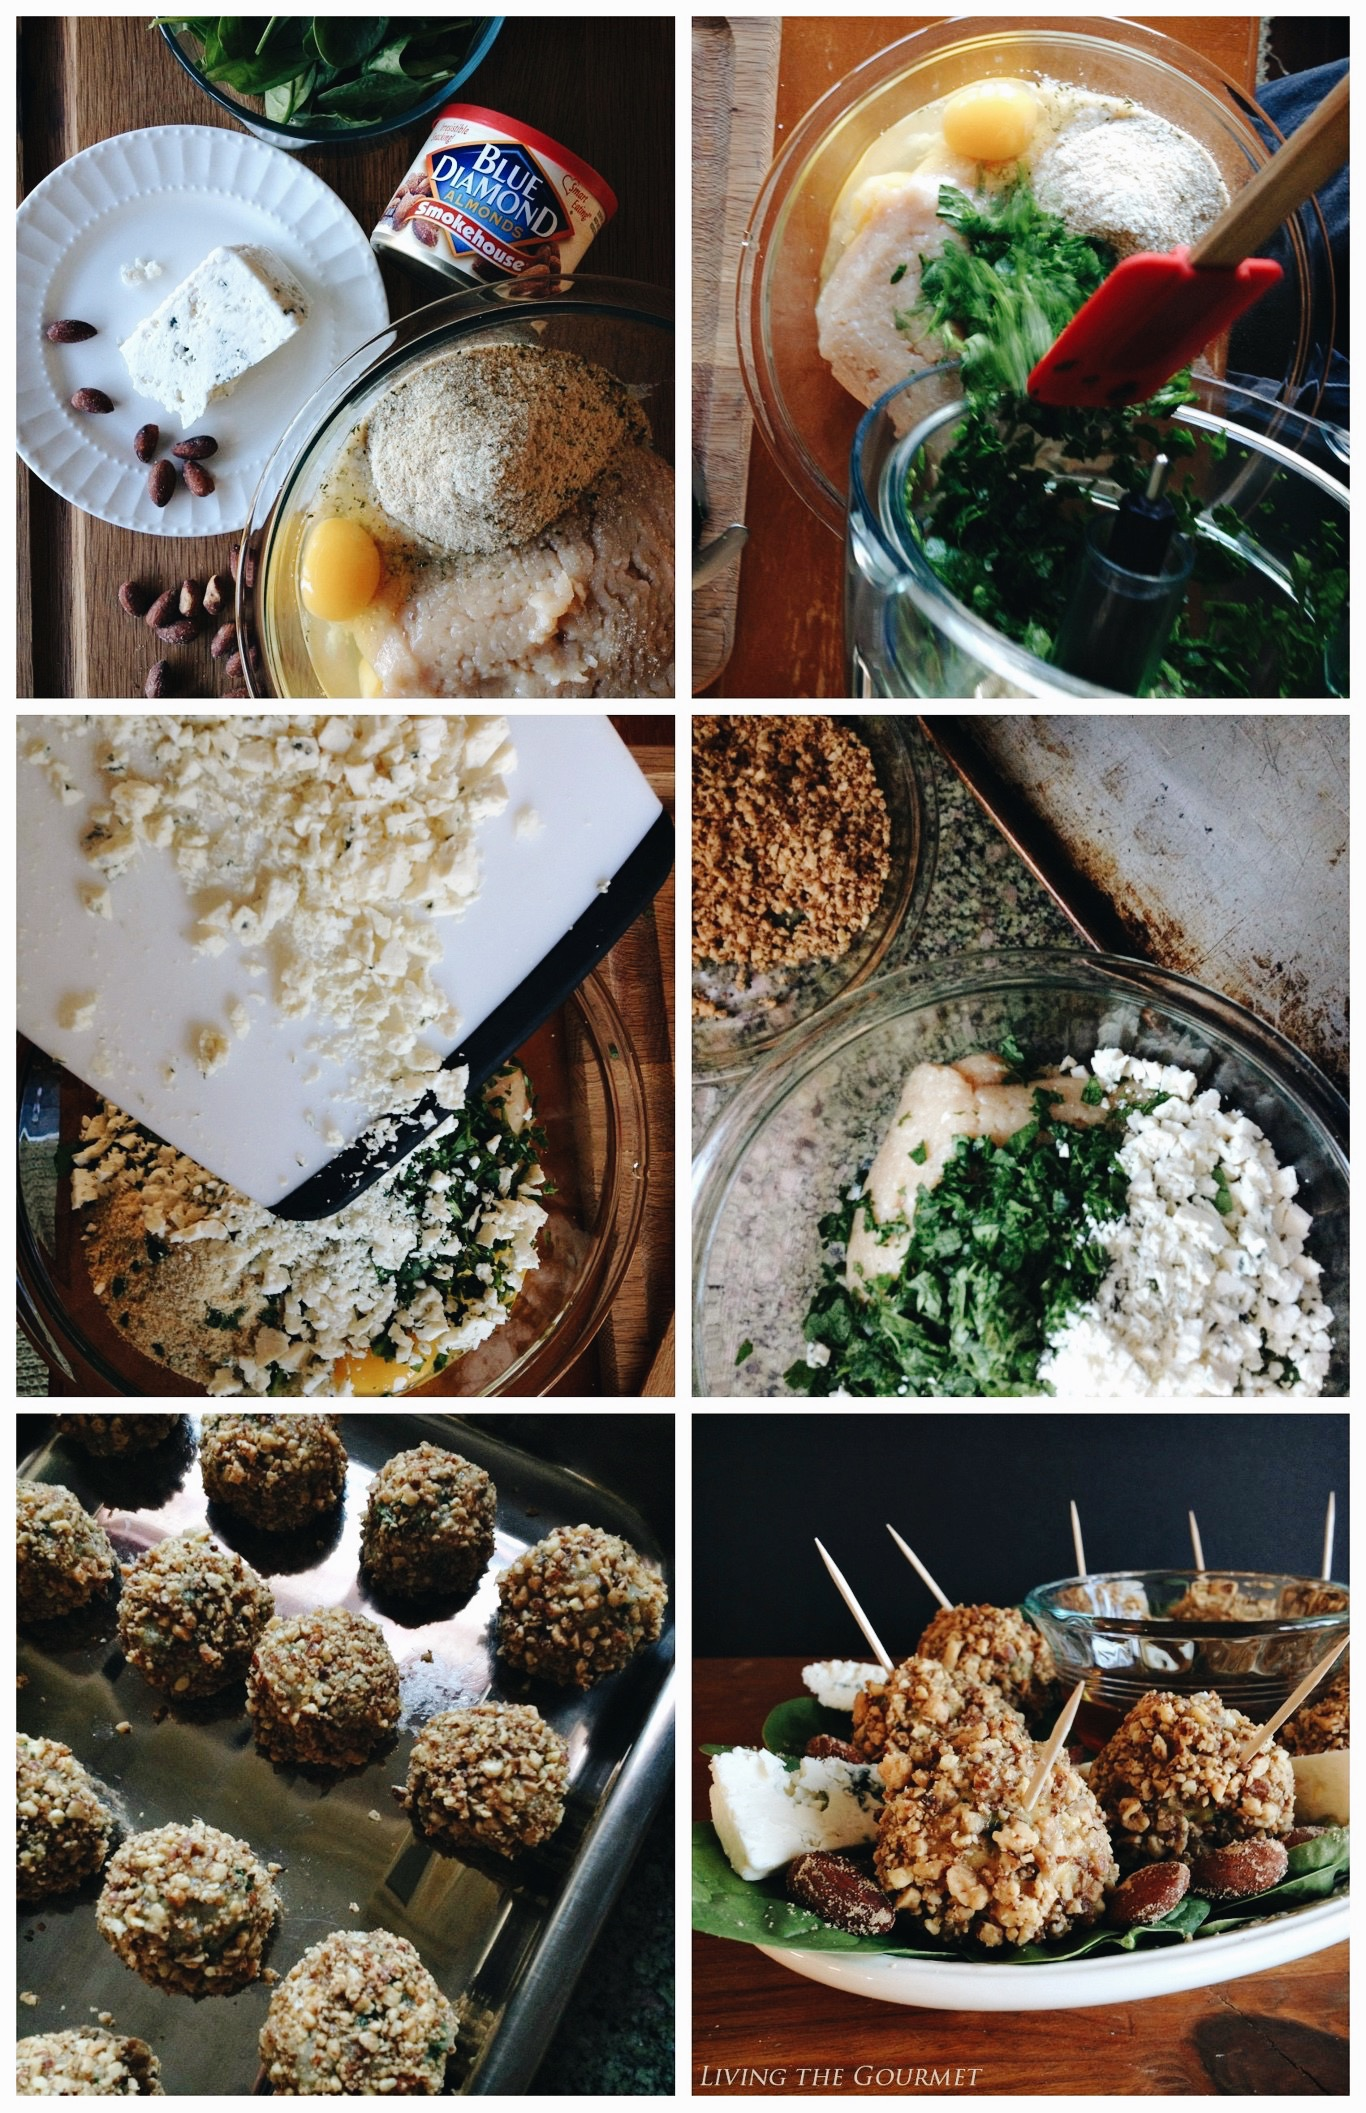 Living the Gourmet: Smokey Almond Crusted Blue Cheese Meatballs | #MezzettaMemories #ad